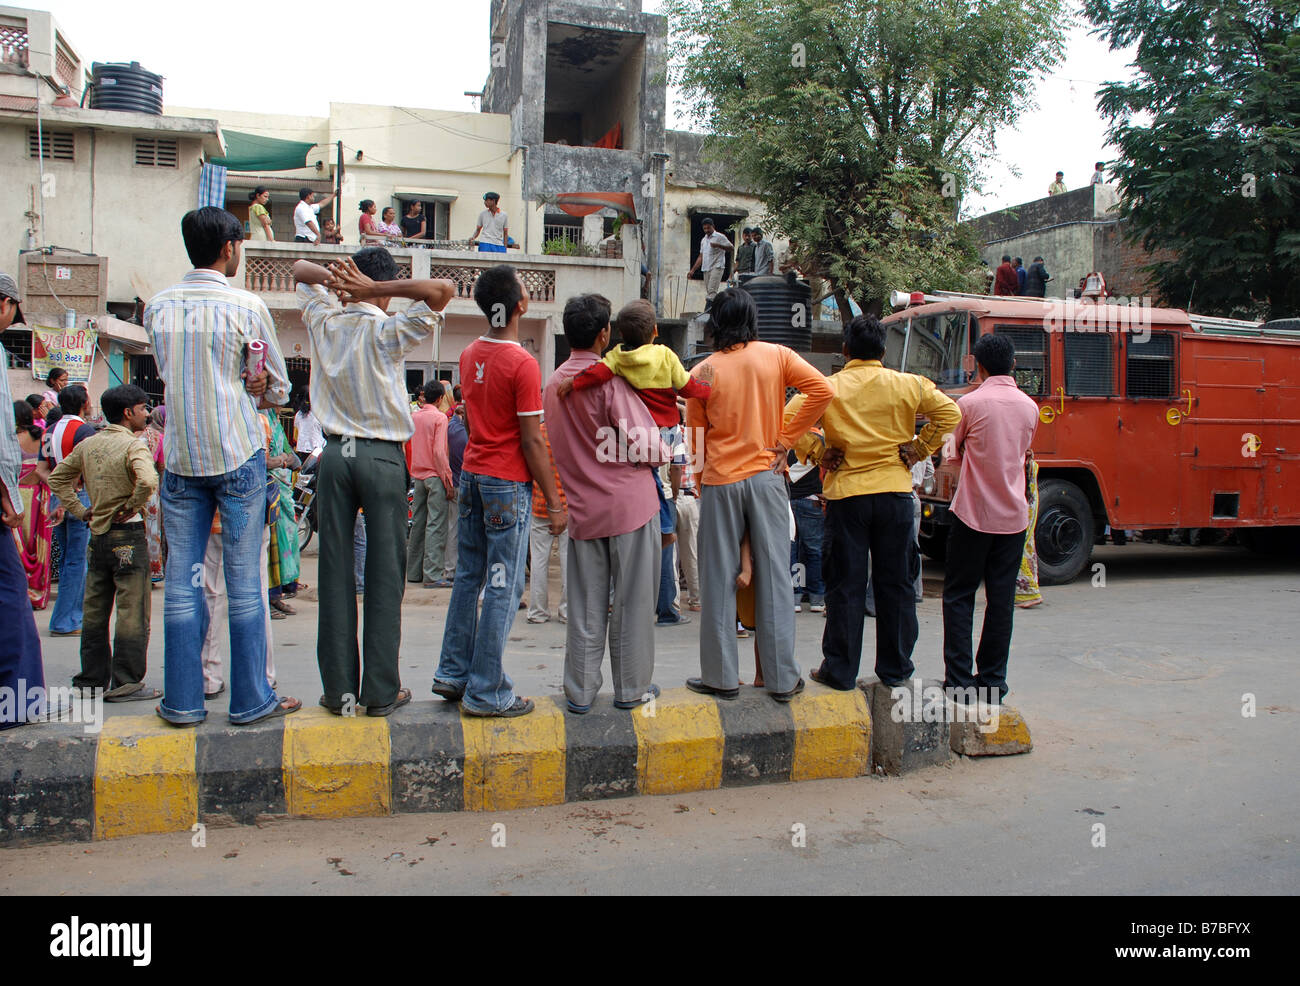 People watching a fire scene in Ahmedabad, India. - Stock Image